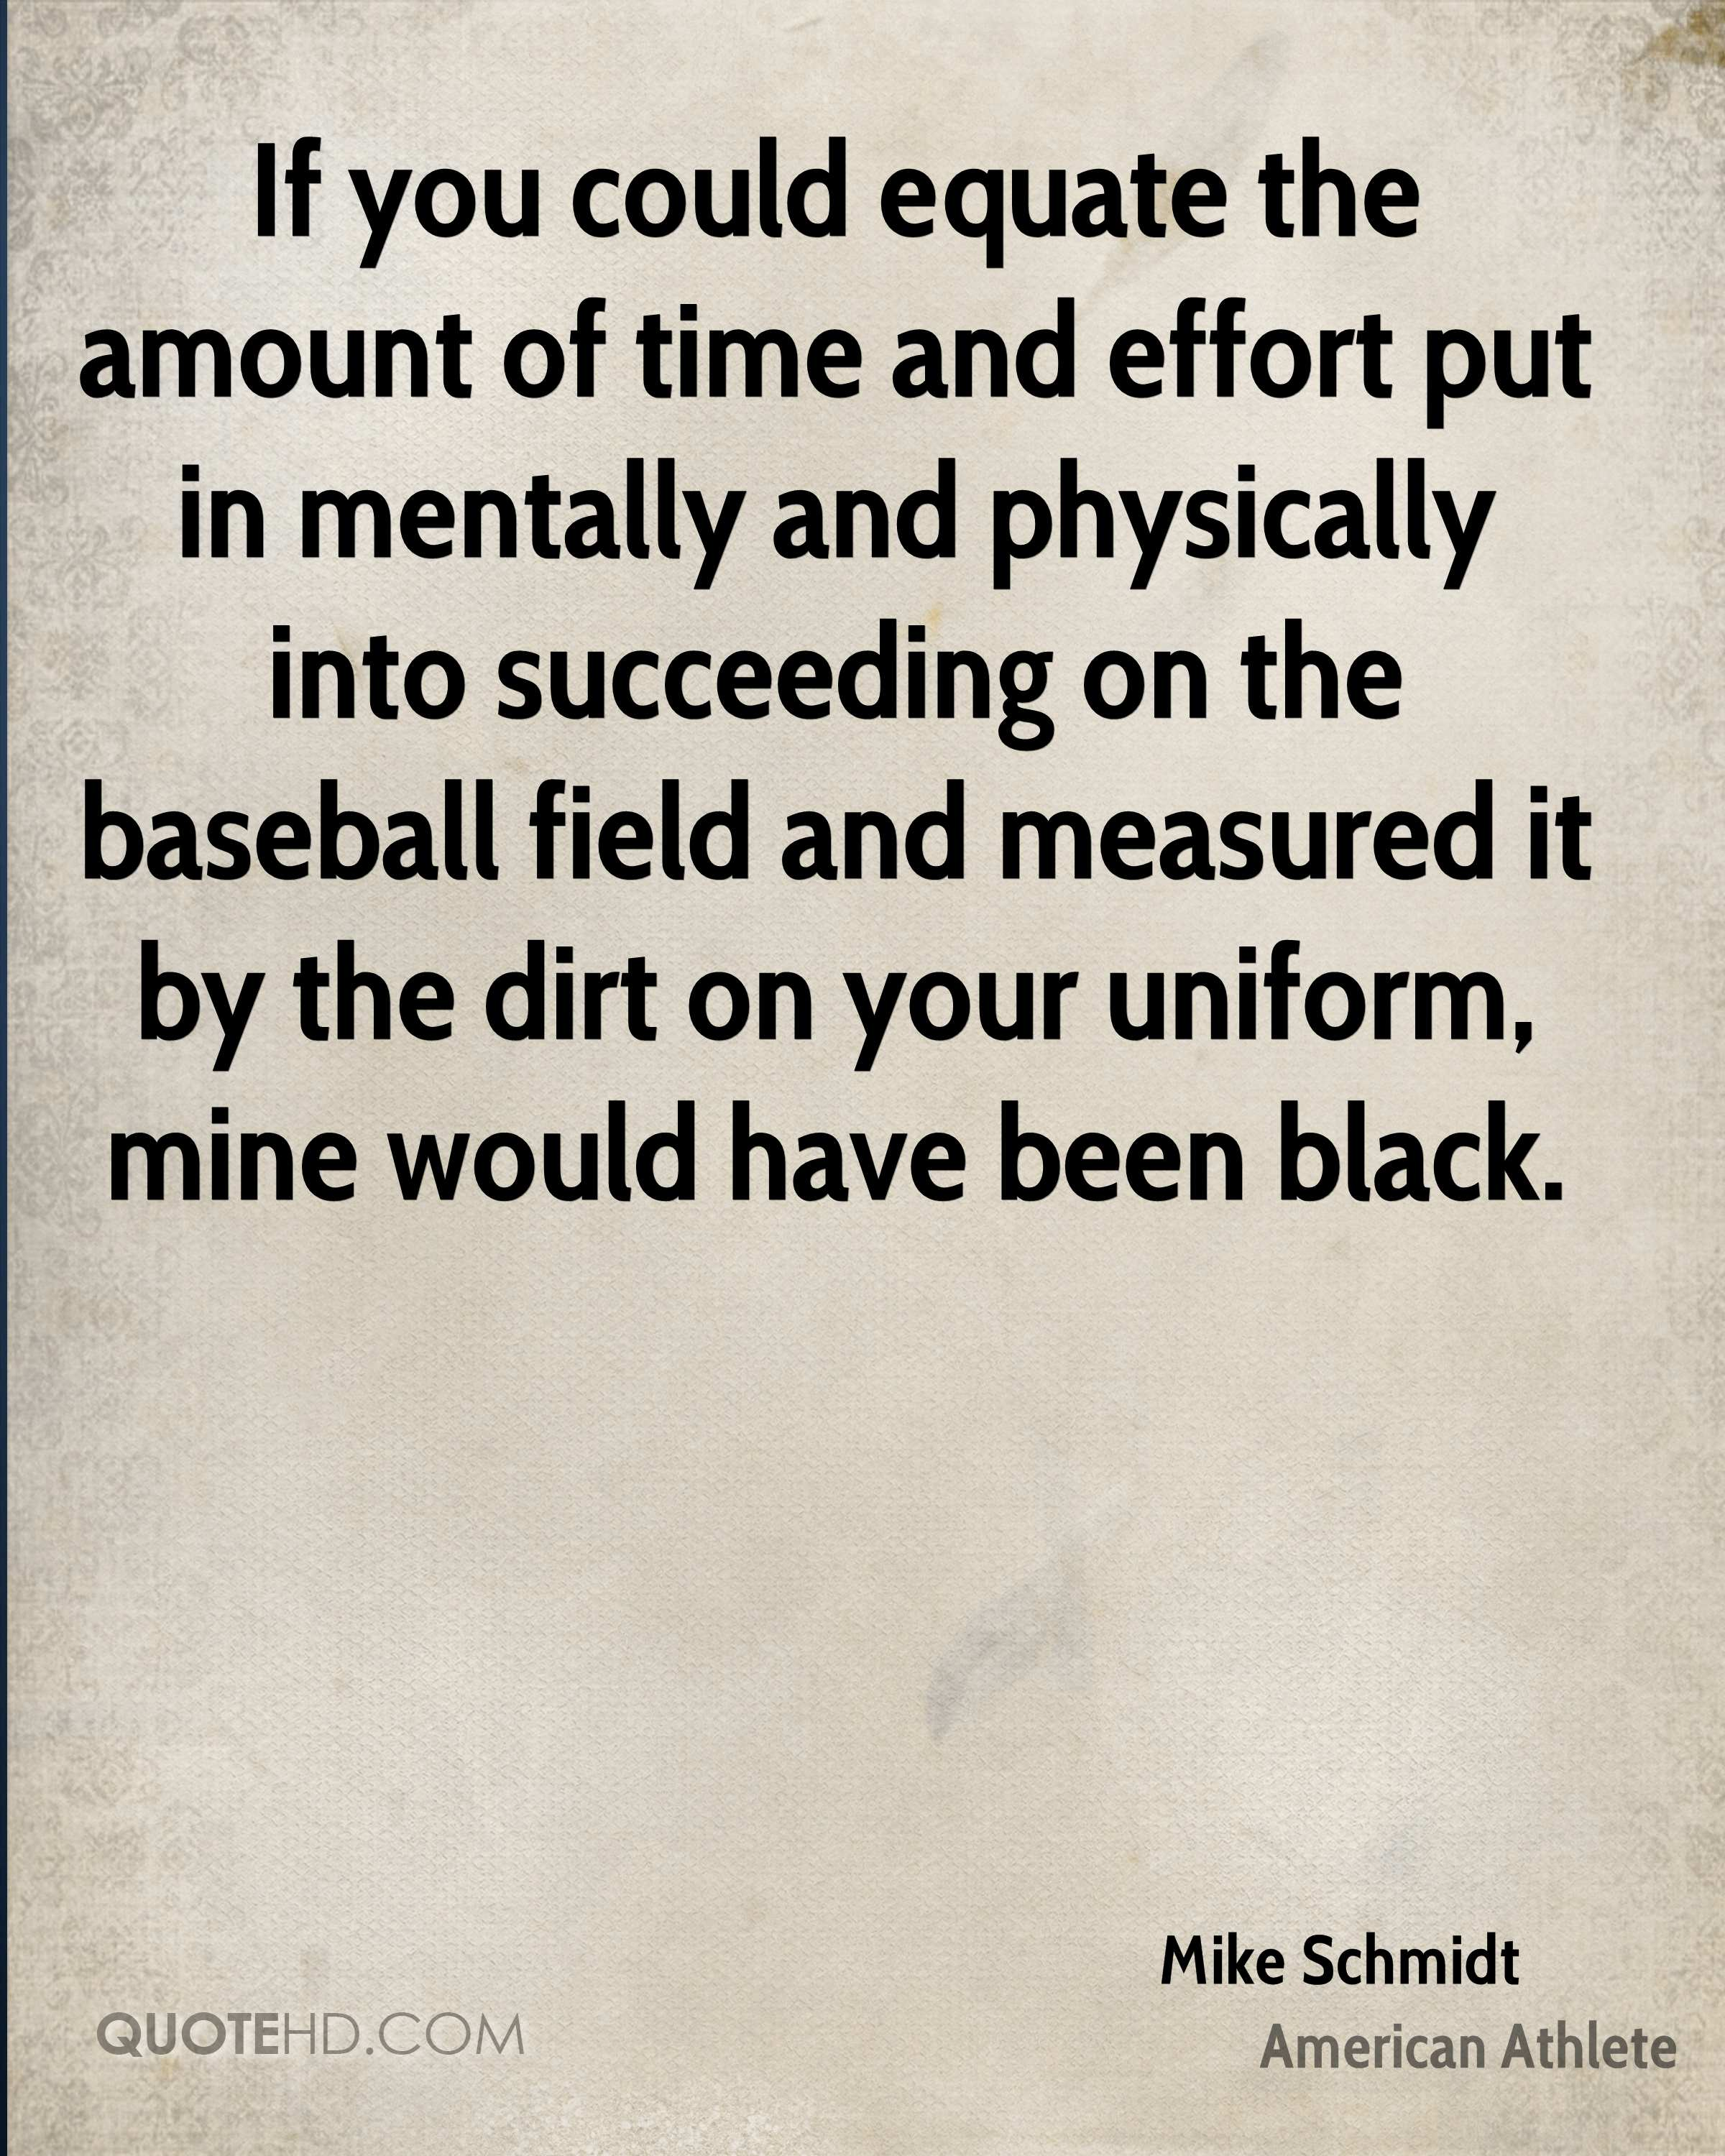 If you could equate the amount of time and effort put in mentally and physically into succeeding on the baseball field and measured it by the dirt on your uniform, mine would have been black.